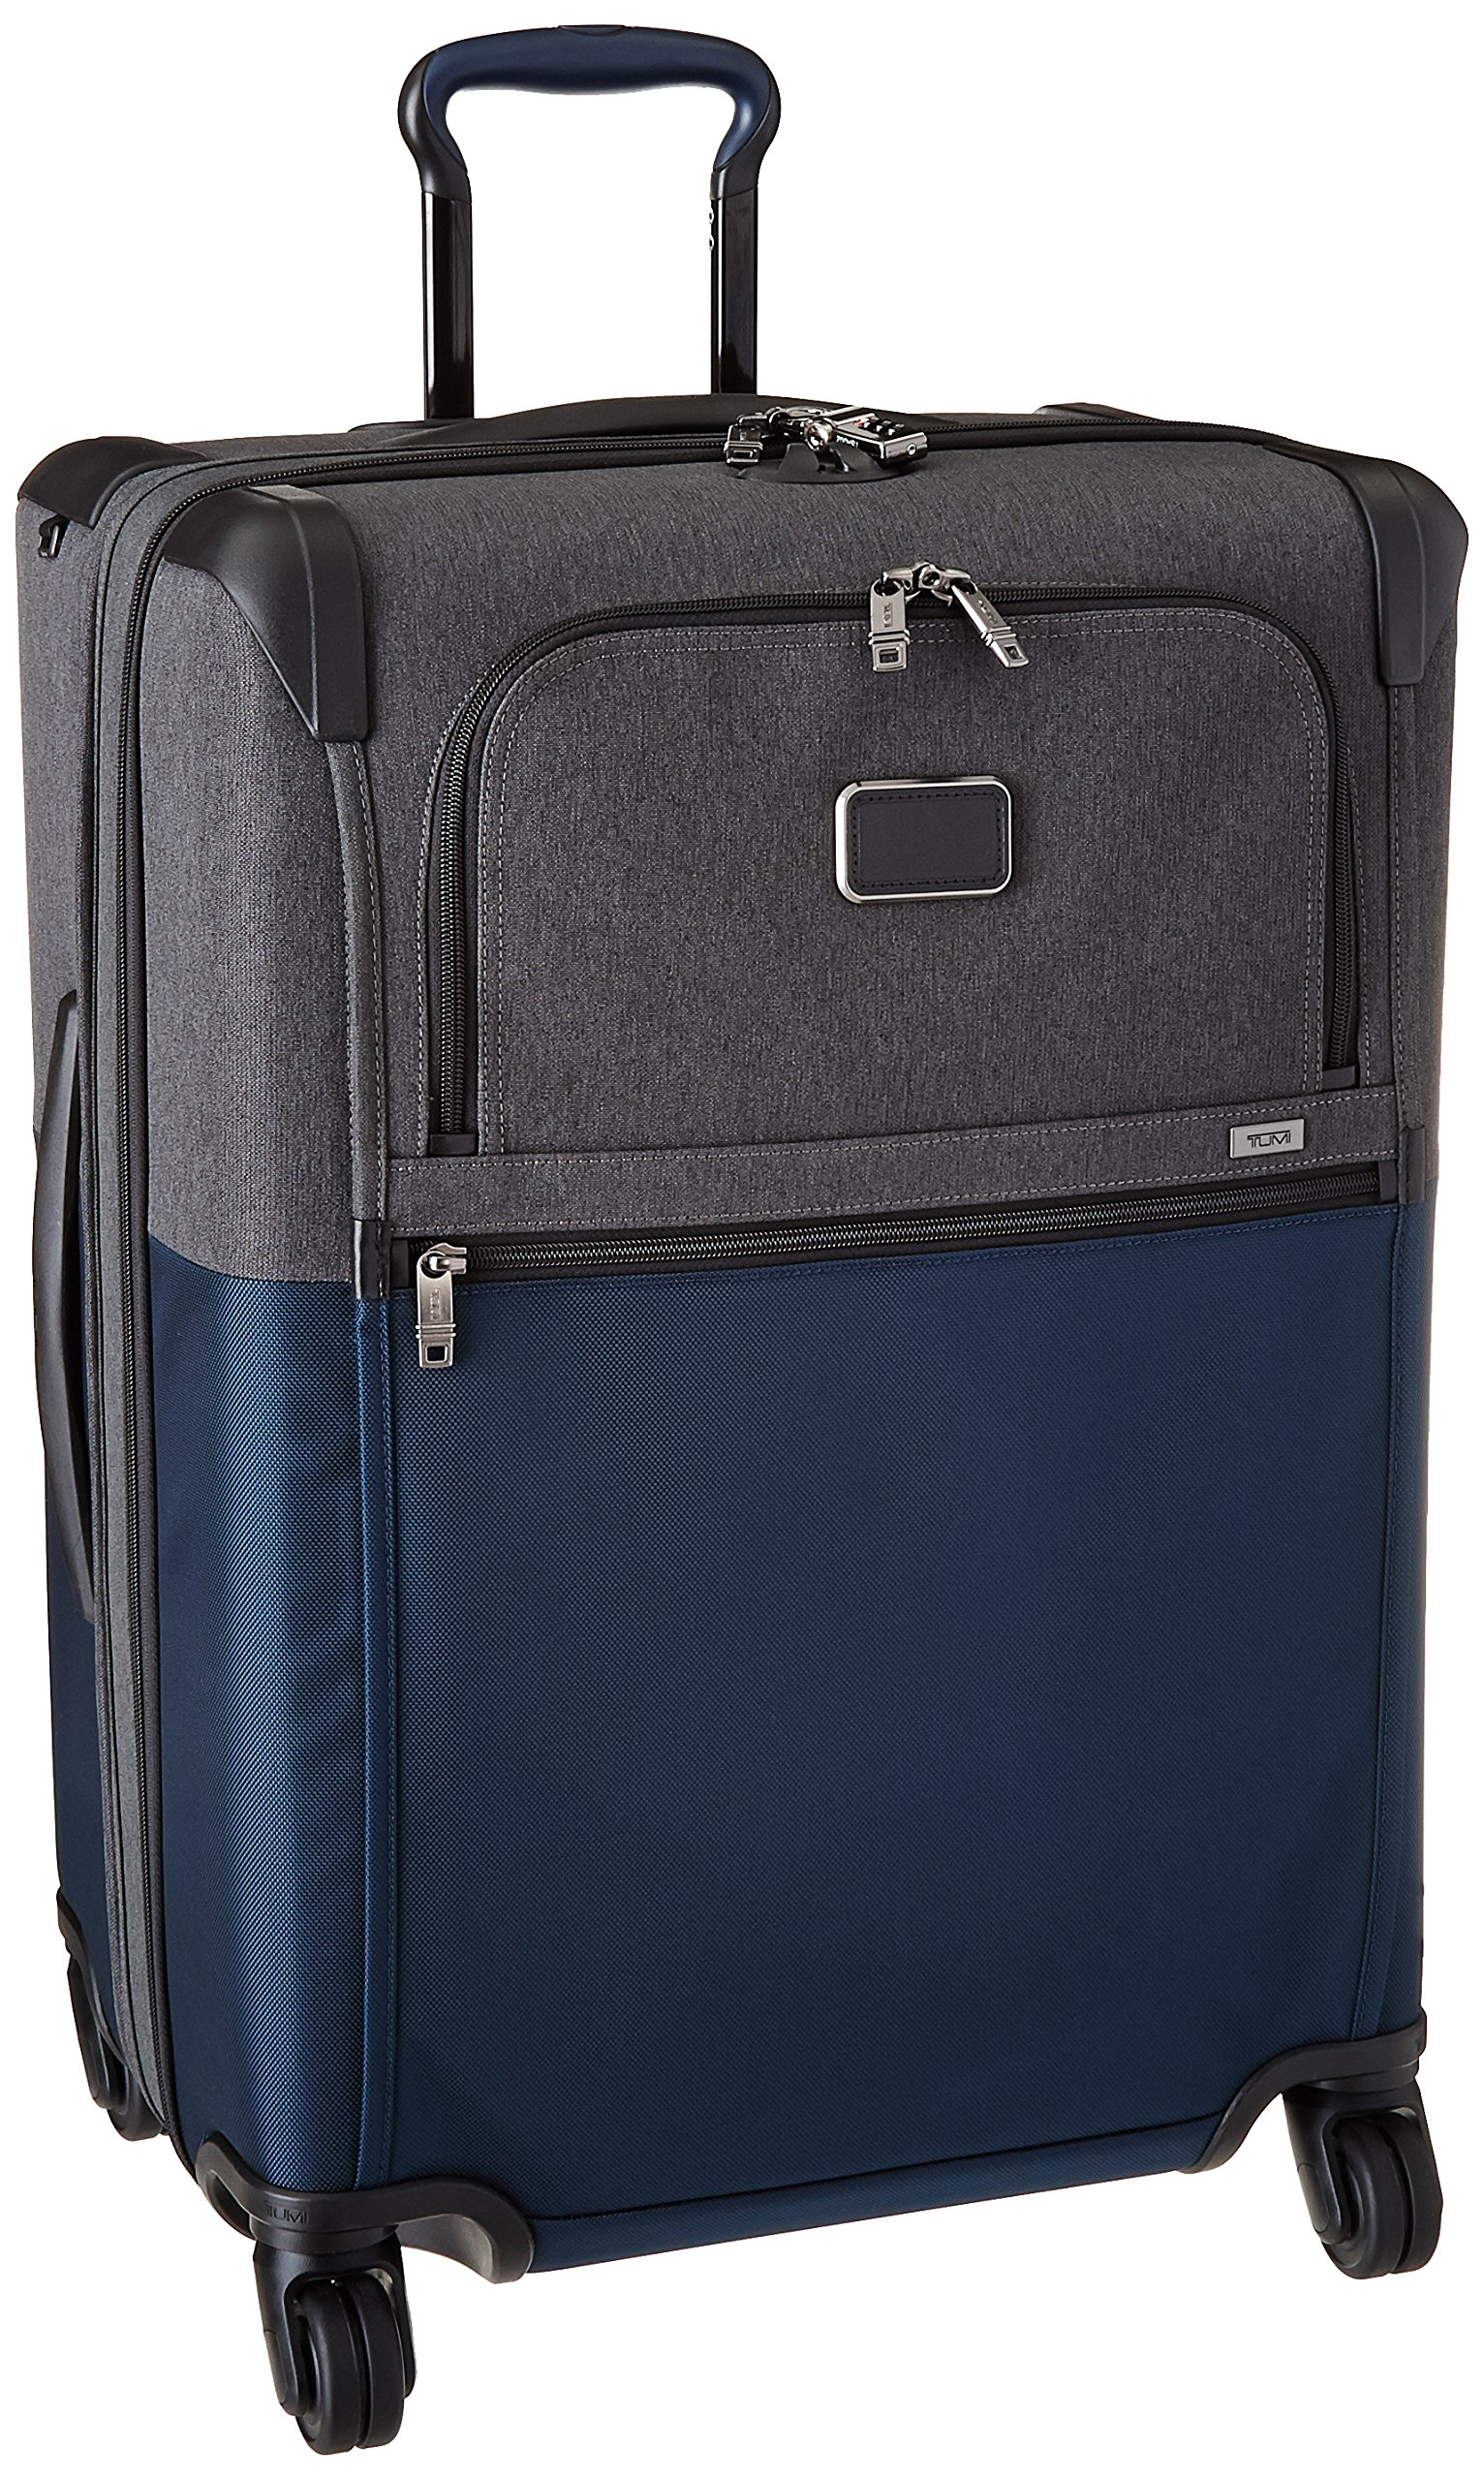 Tumi Alpha 2 Short Trip Expandable 4 Wheel Packing Case, Navy/Anthracite, One Size